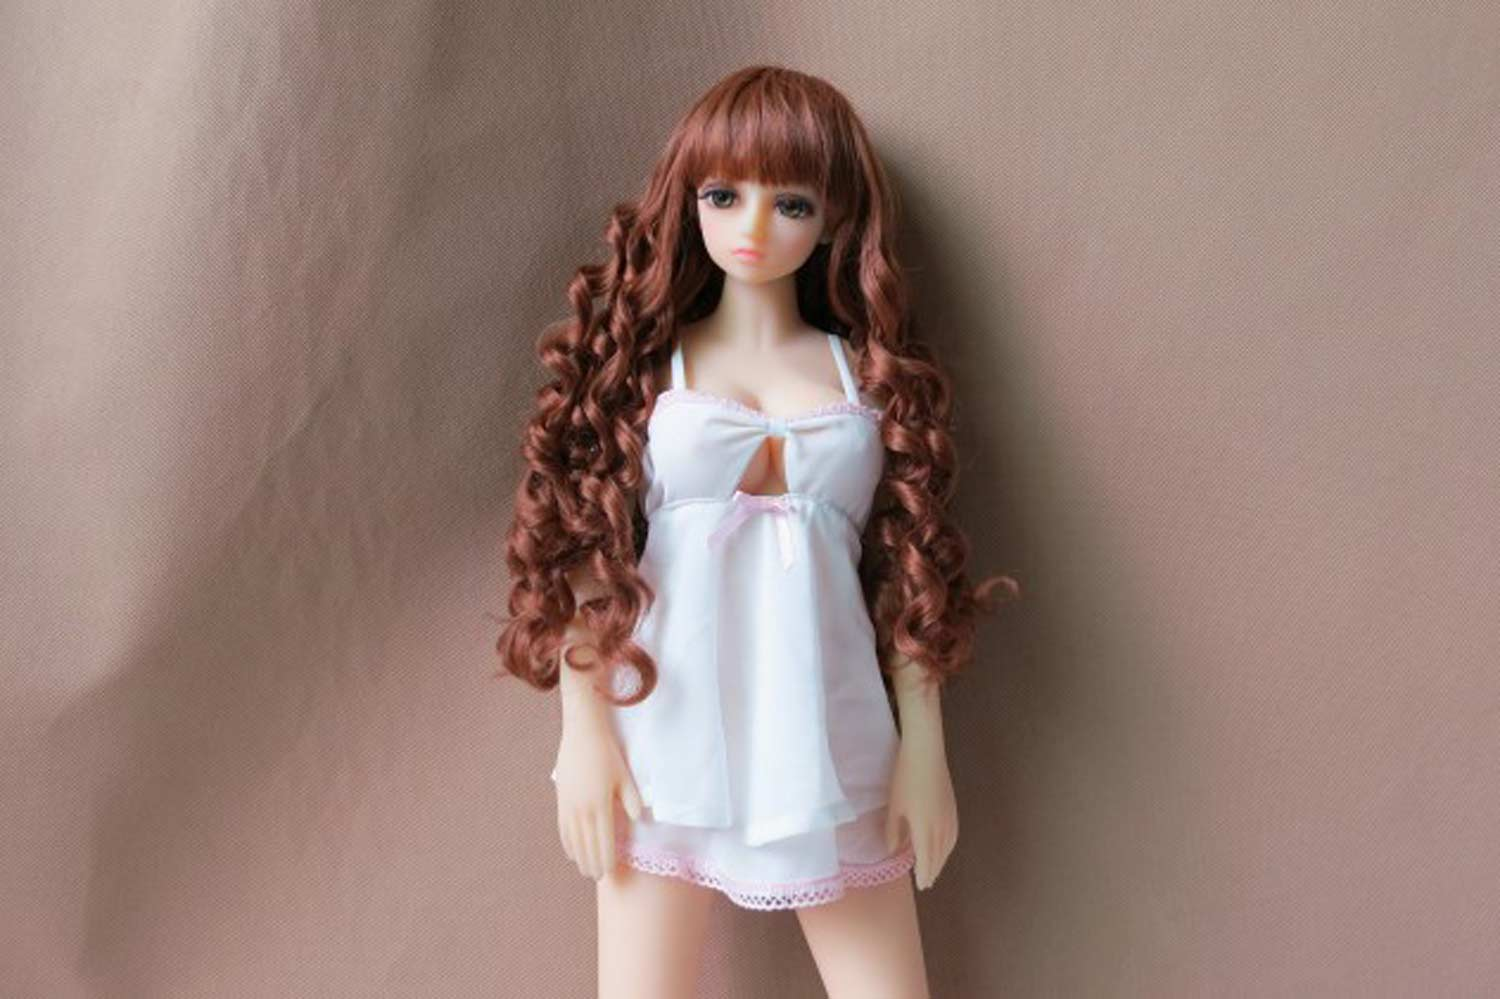 Mini sex doll with brown curly hair